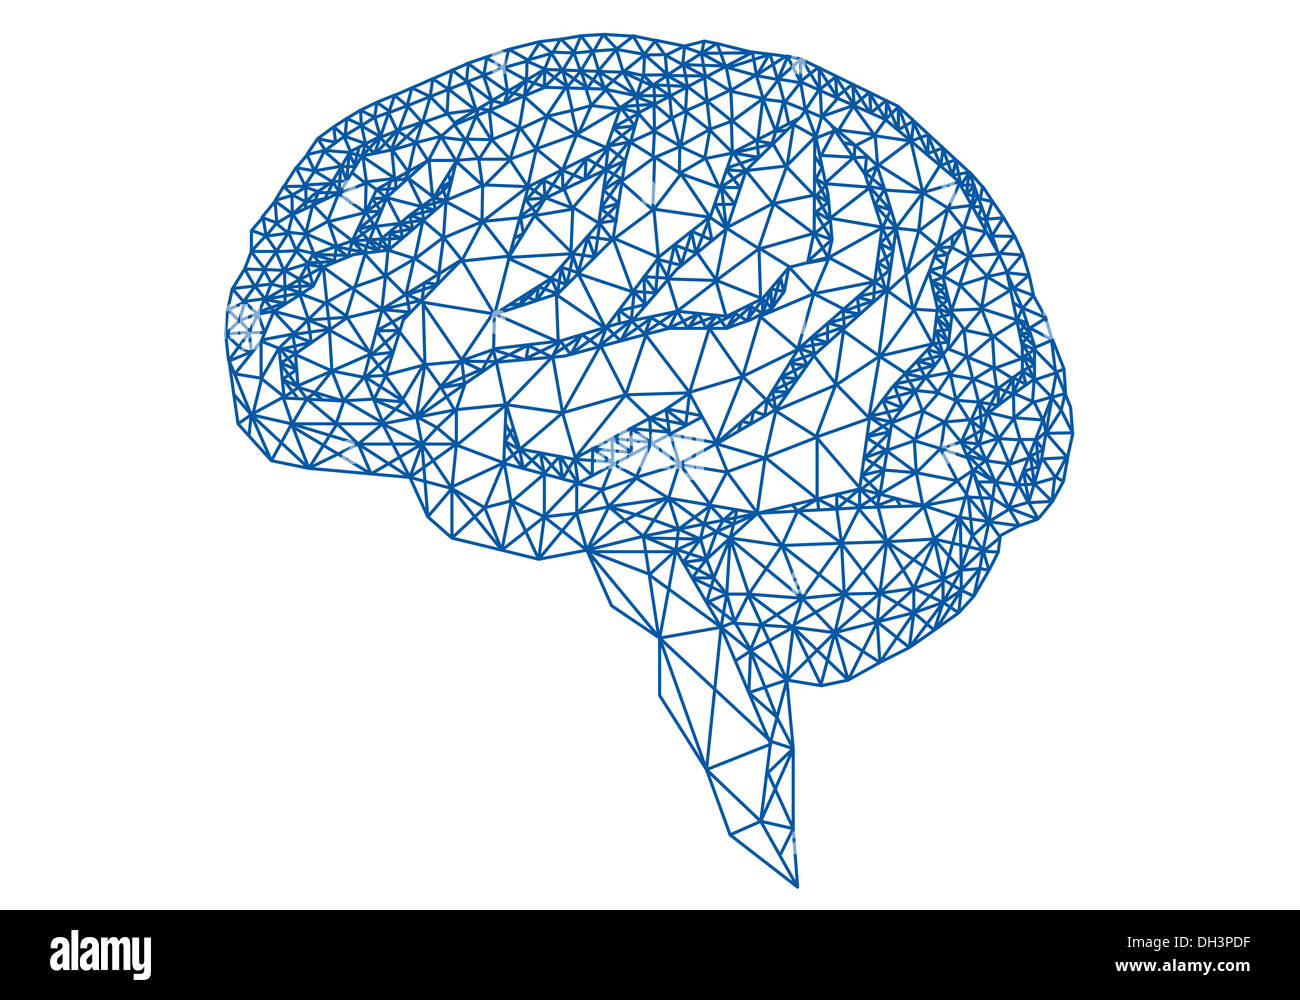 abstract blue human brain with geometric mesh pattern, vector illustration - Stock Image